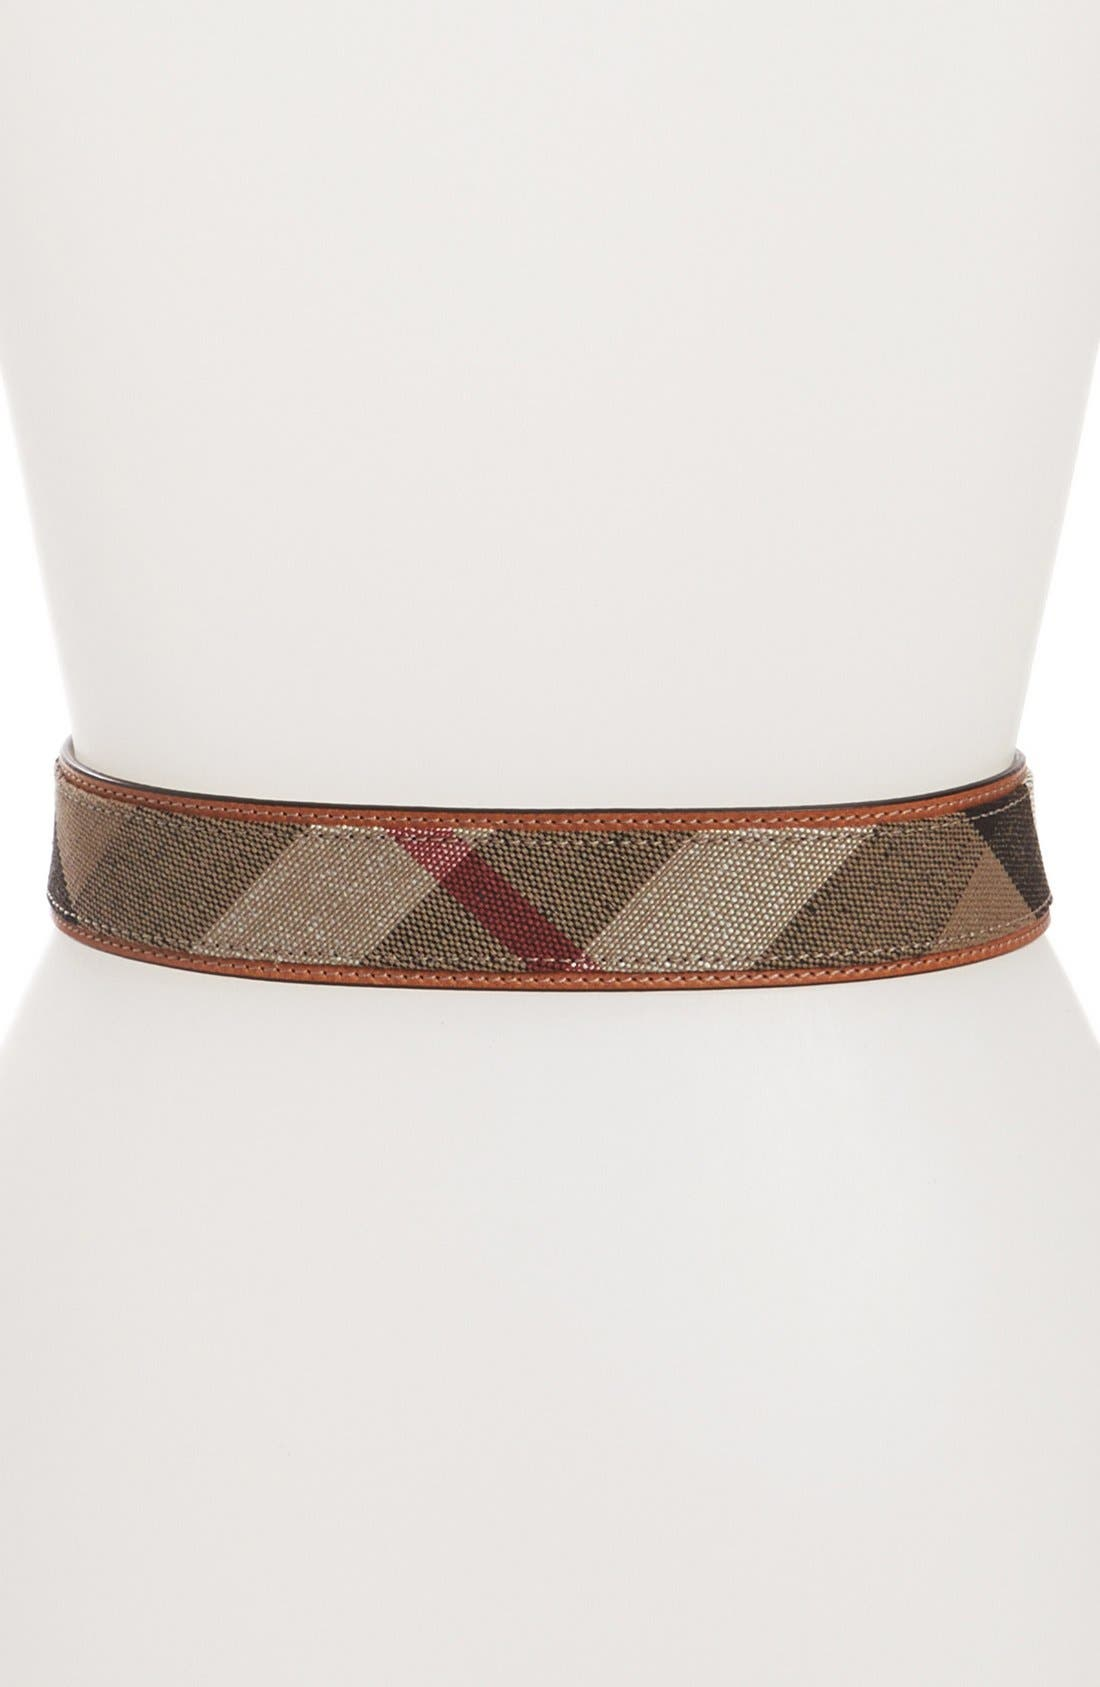 Alternate Image 2  - Burberry Check Leather Trim Belt